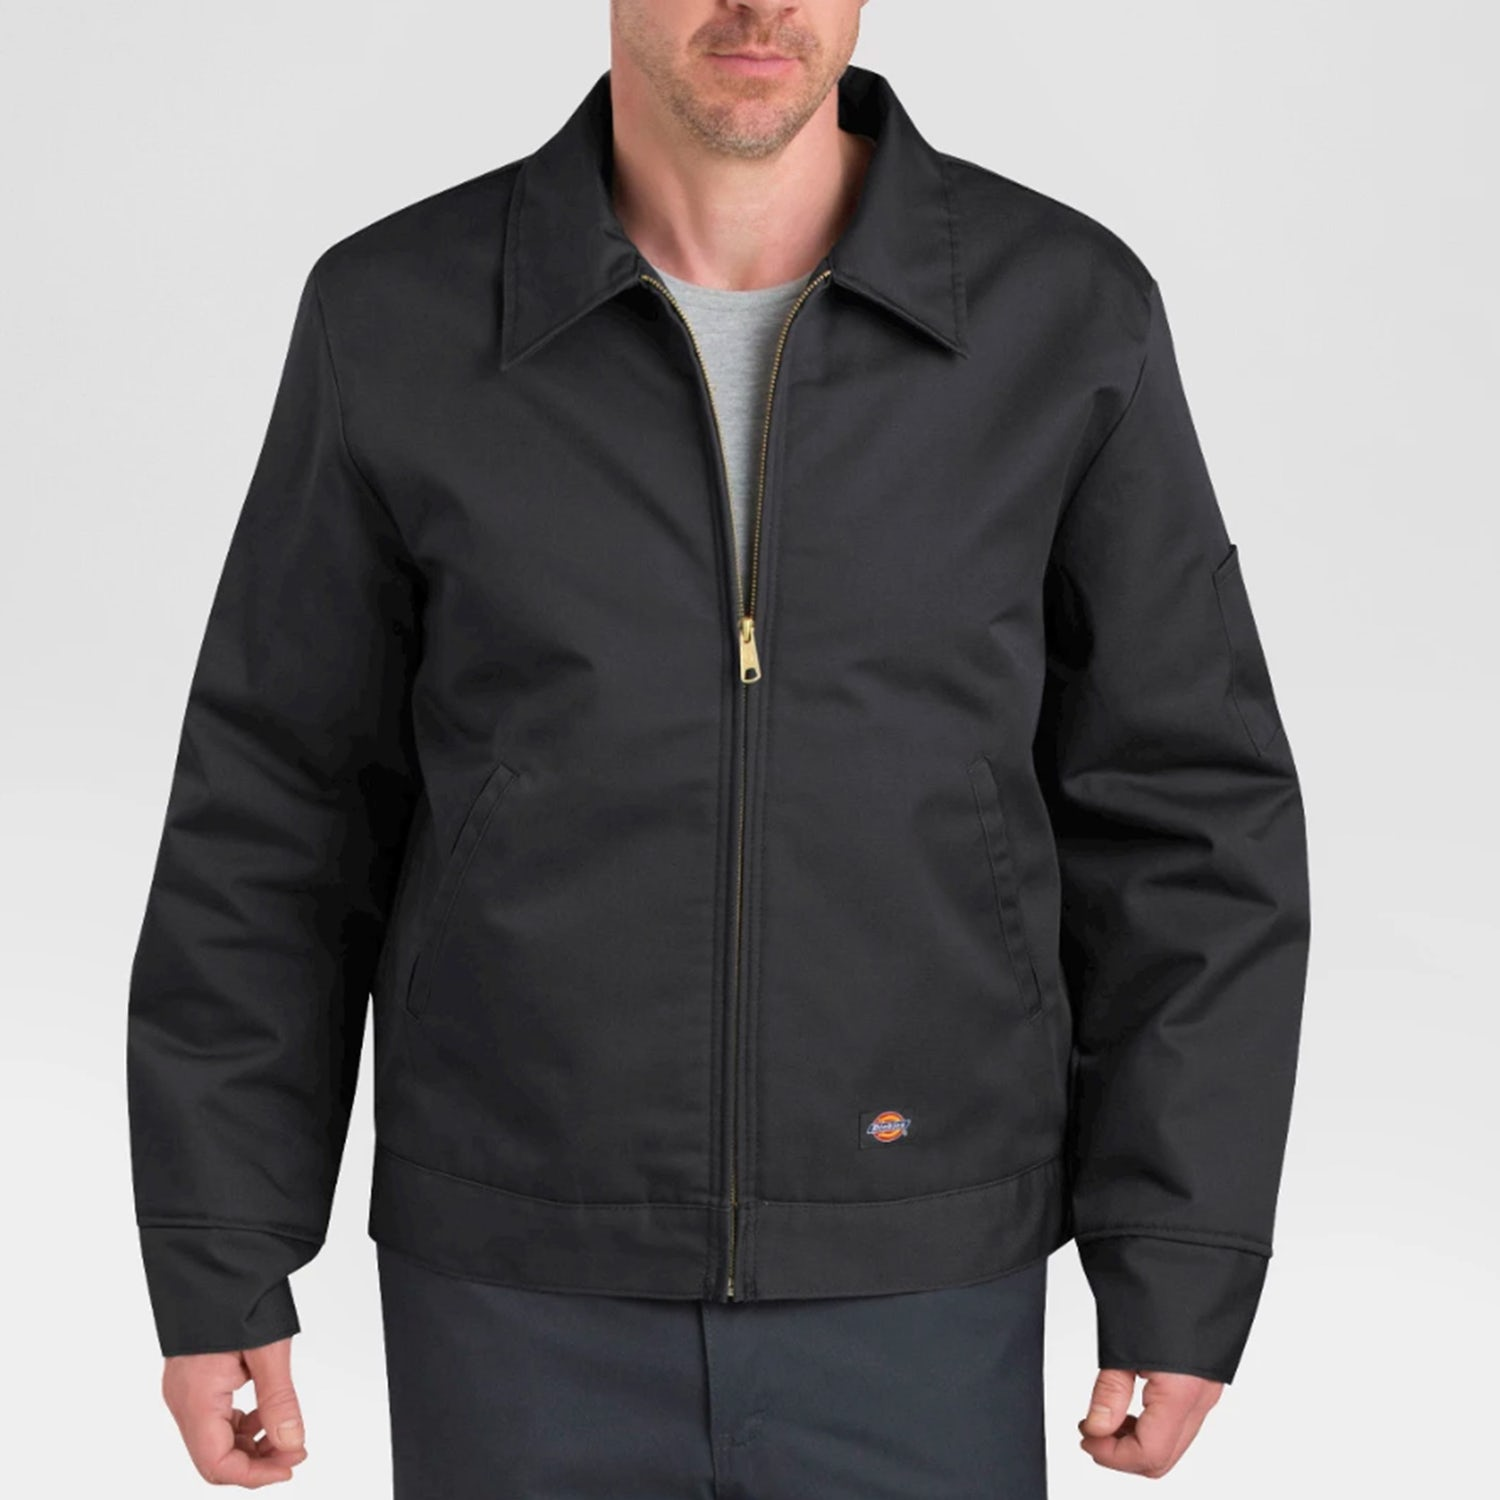 kanye west dickies jacket black